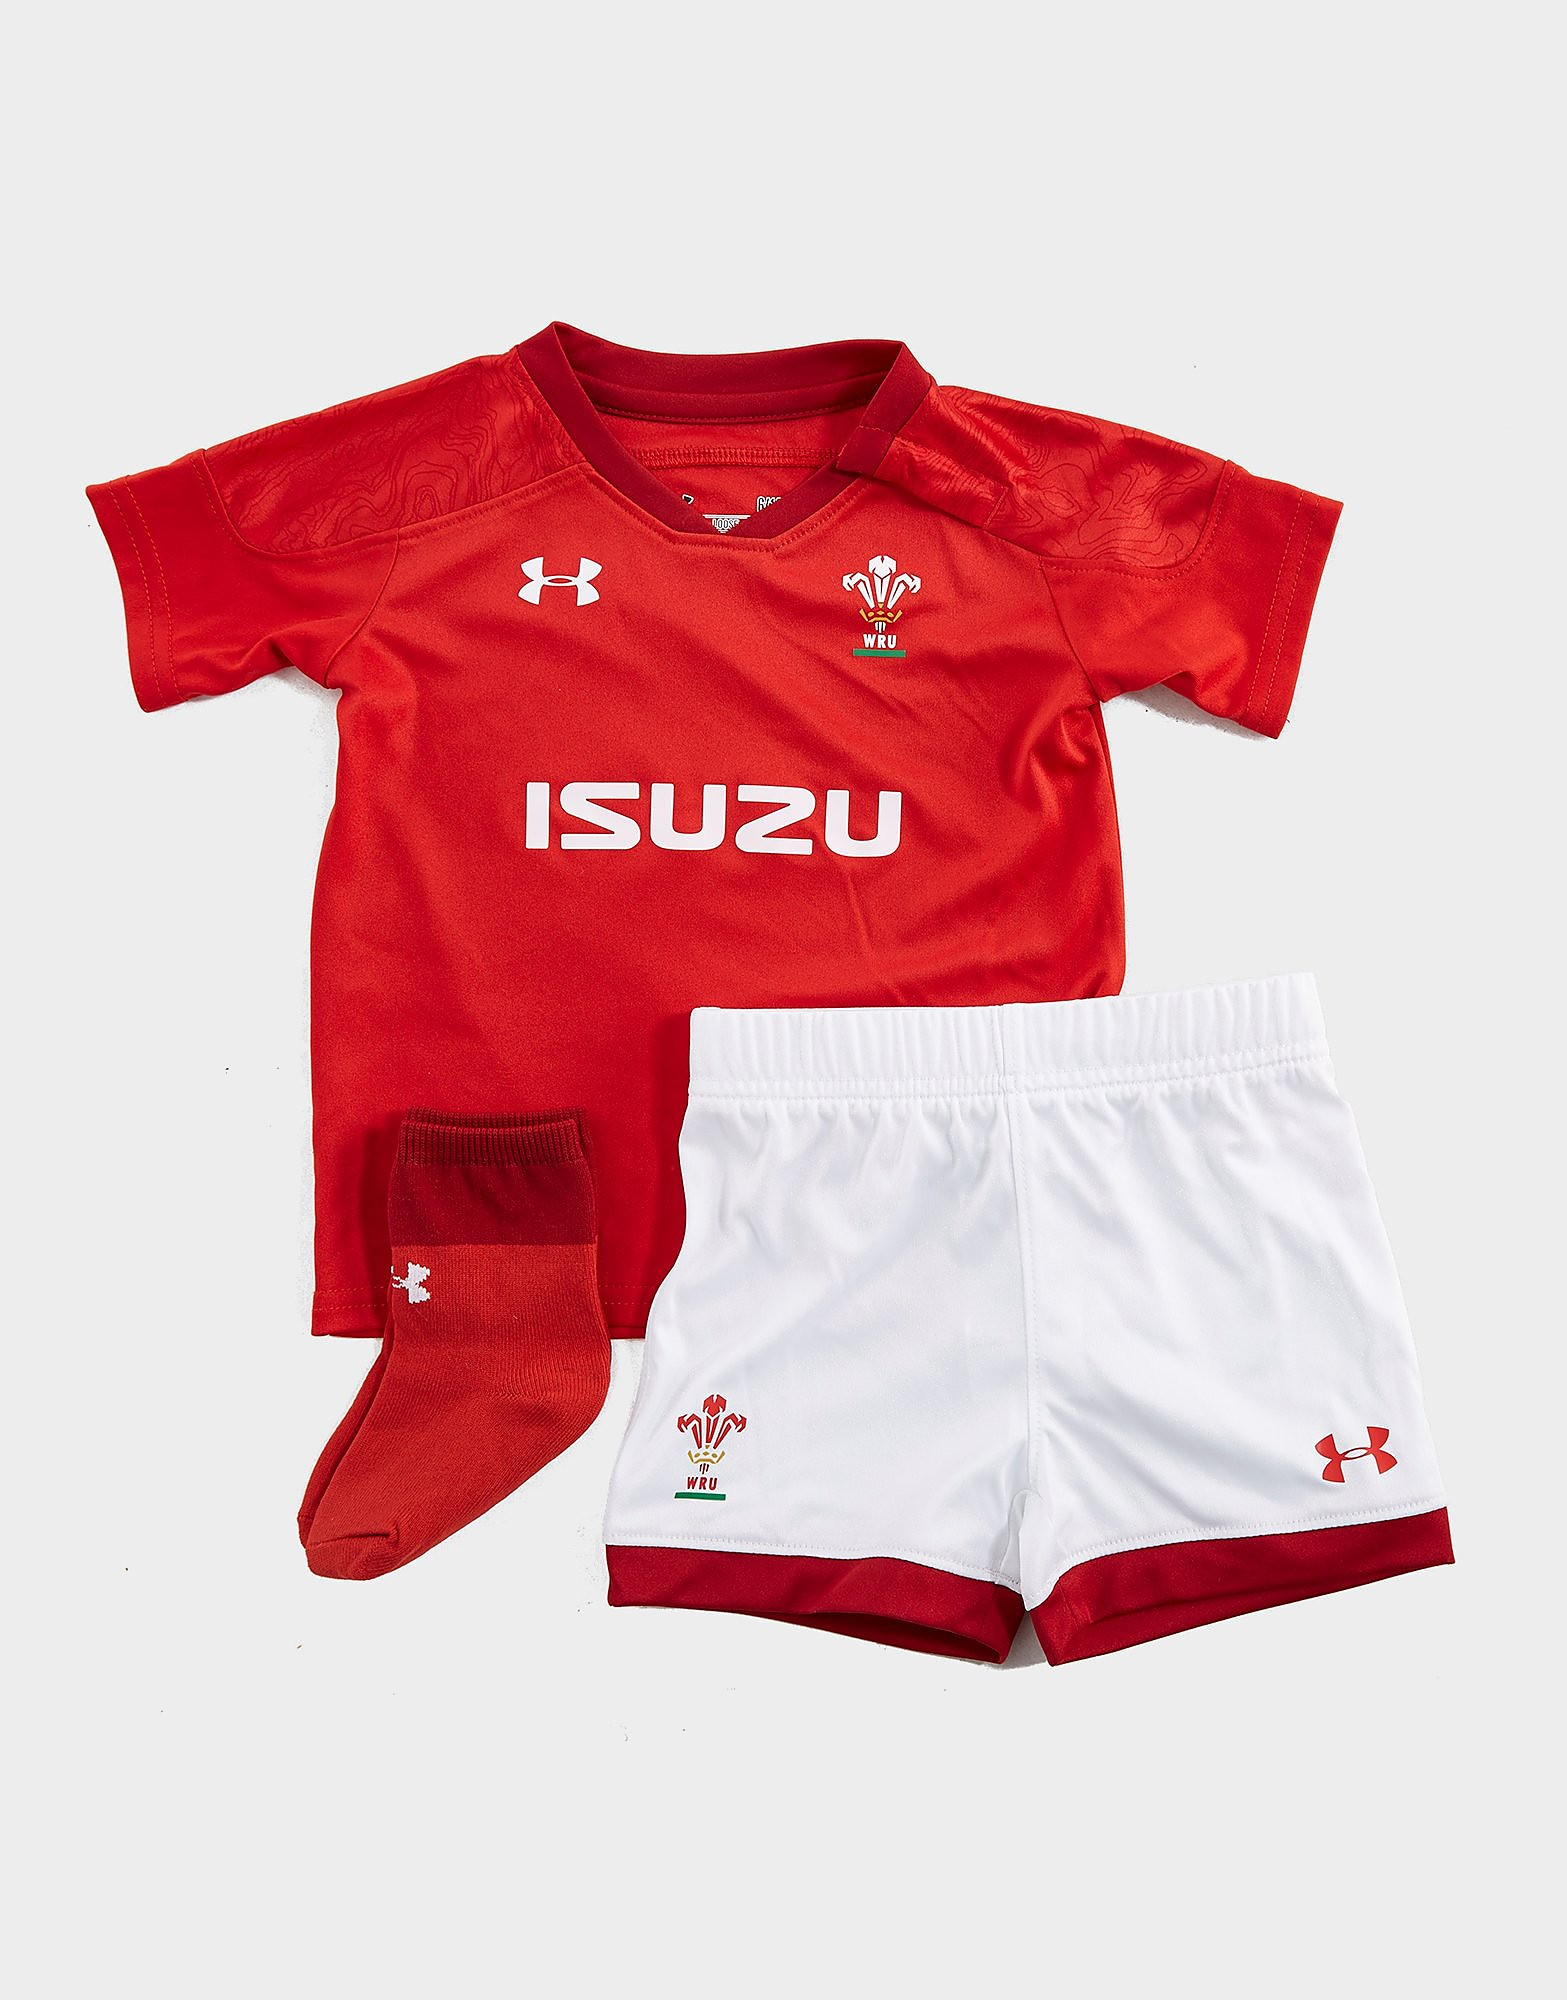 Under Armour Wales RU 2017/18 Kit Baby's - Rood - Kind